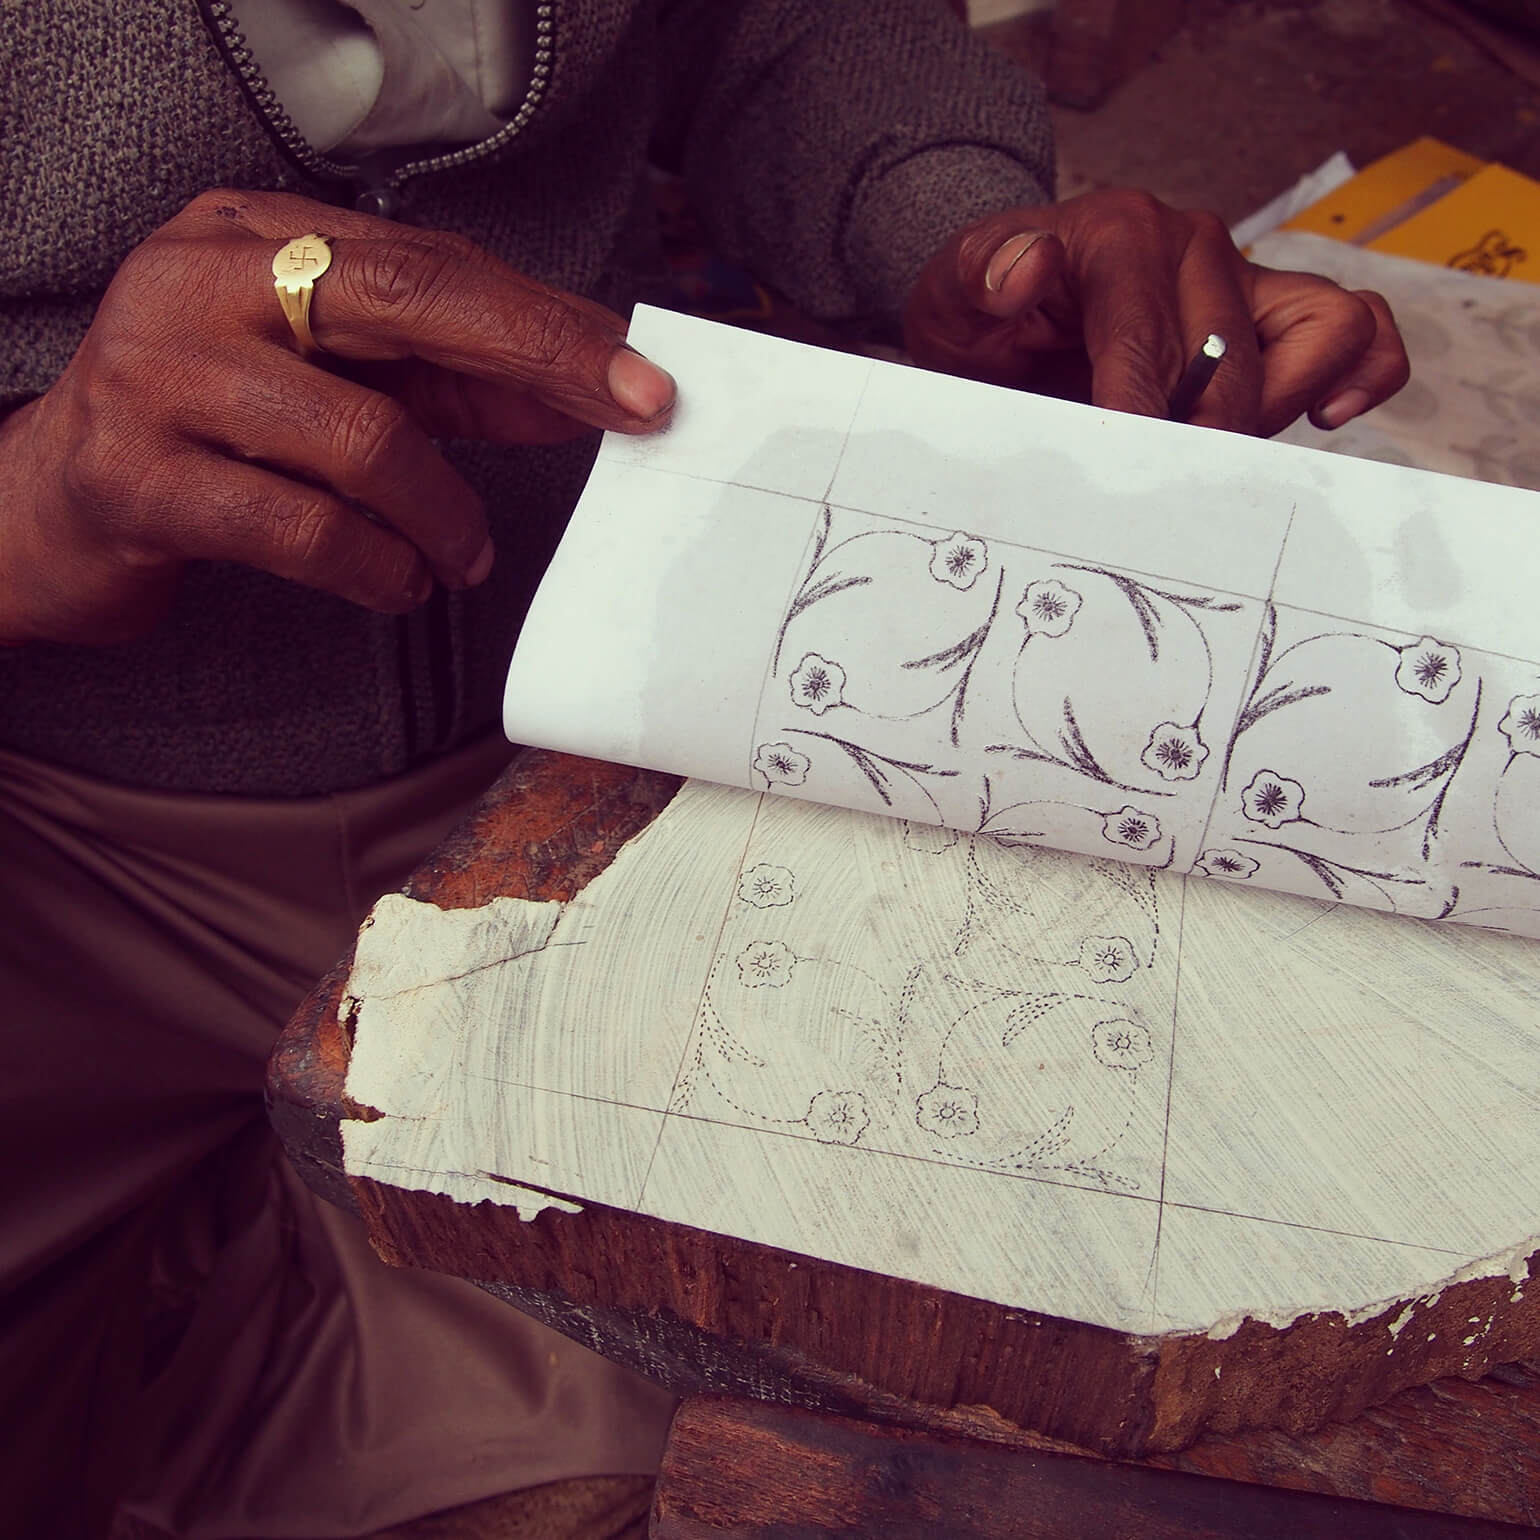 1.At the wood engraving workshop, a craftsman's hand transferring the design to the wood block